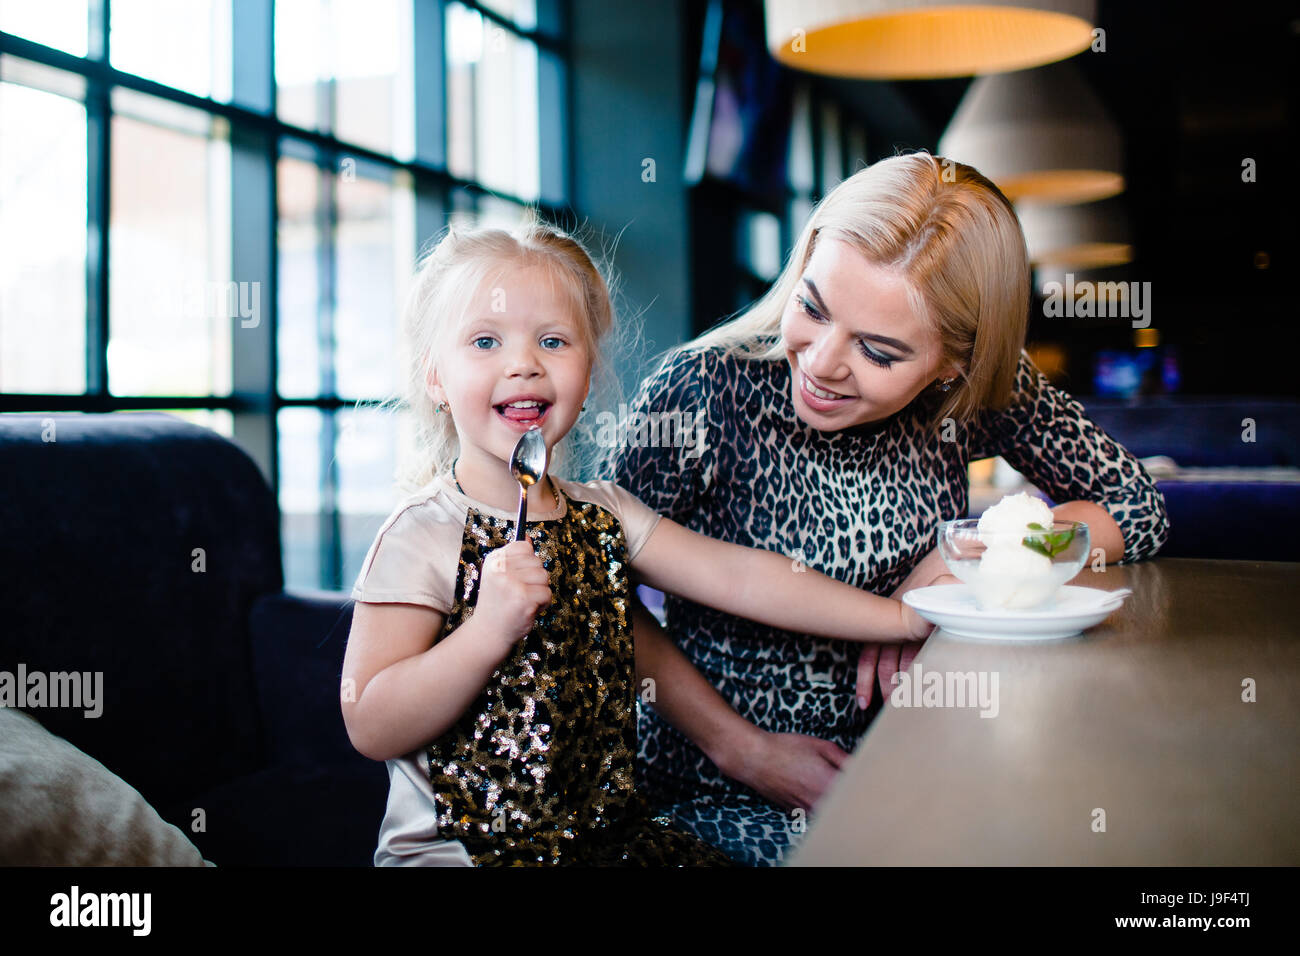 Mother and daughter in cafe - Stock Image